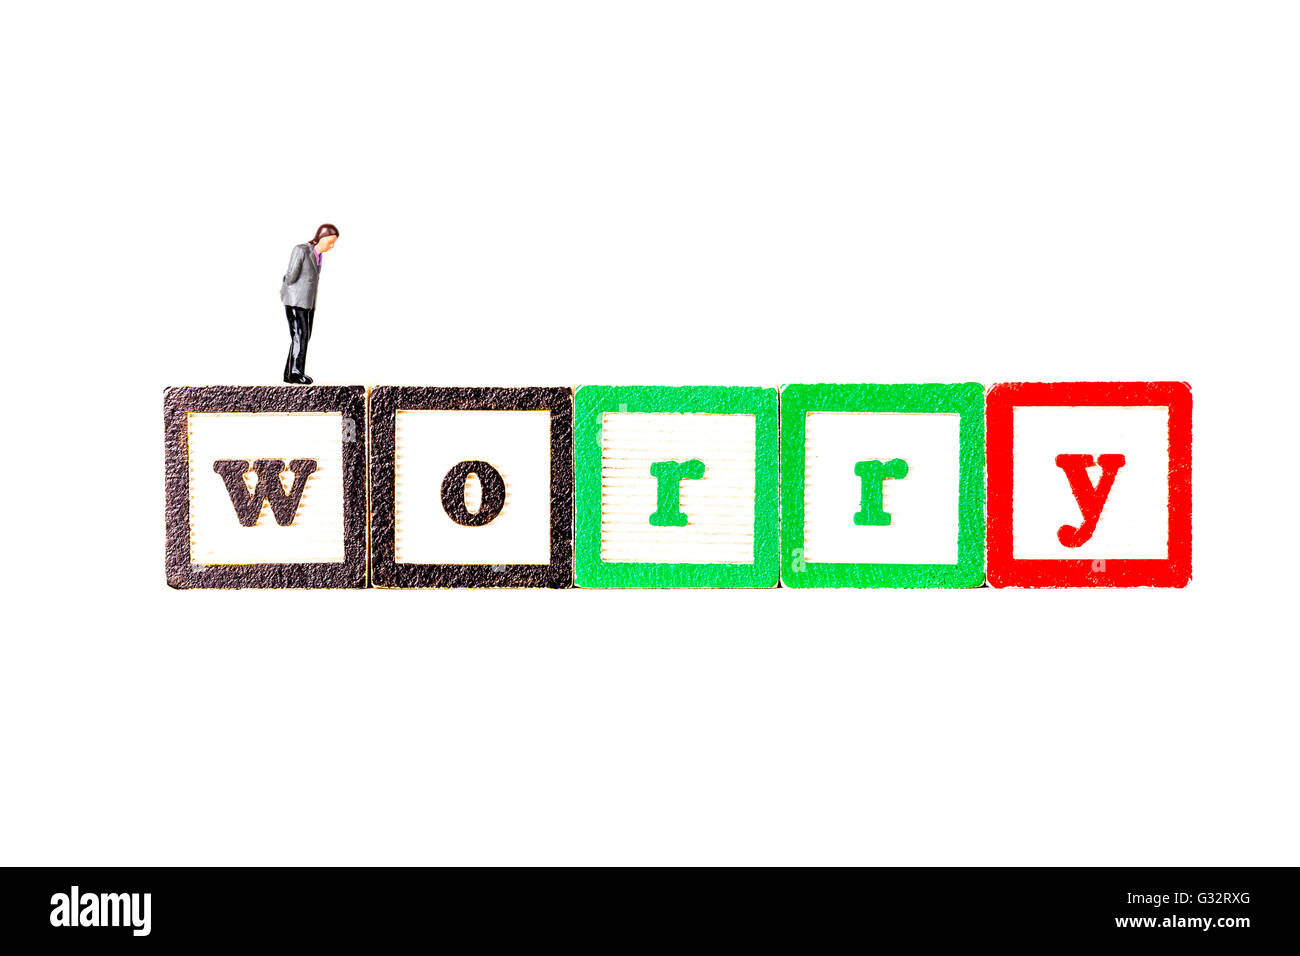 Worry man worrying about actual or potential problems 	trouble bother cause anxiety make anxious disturb distress - Stock Image